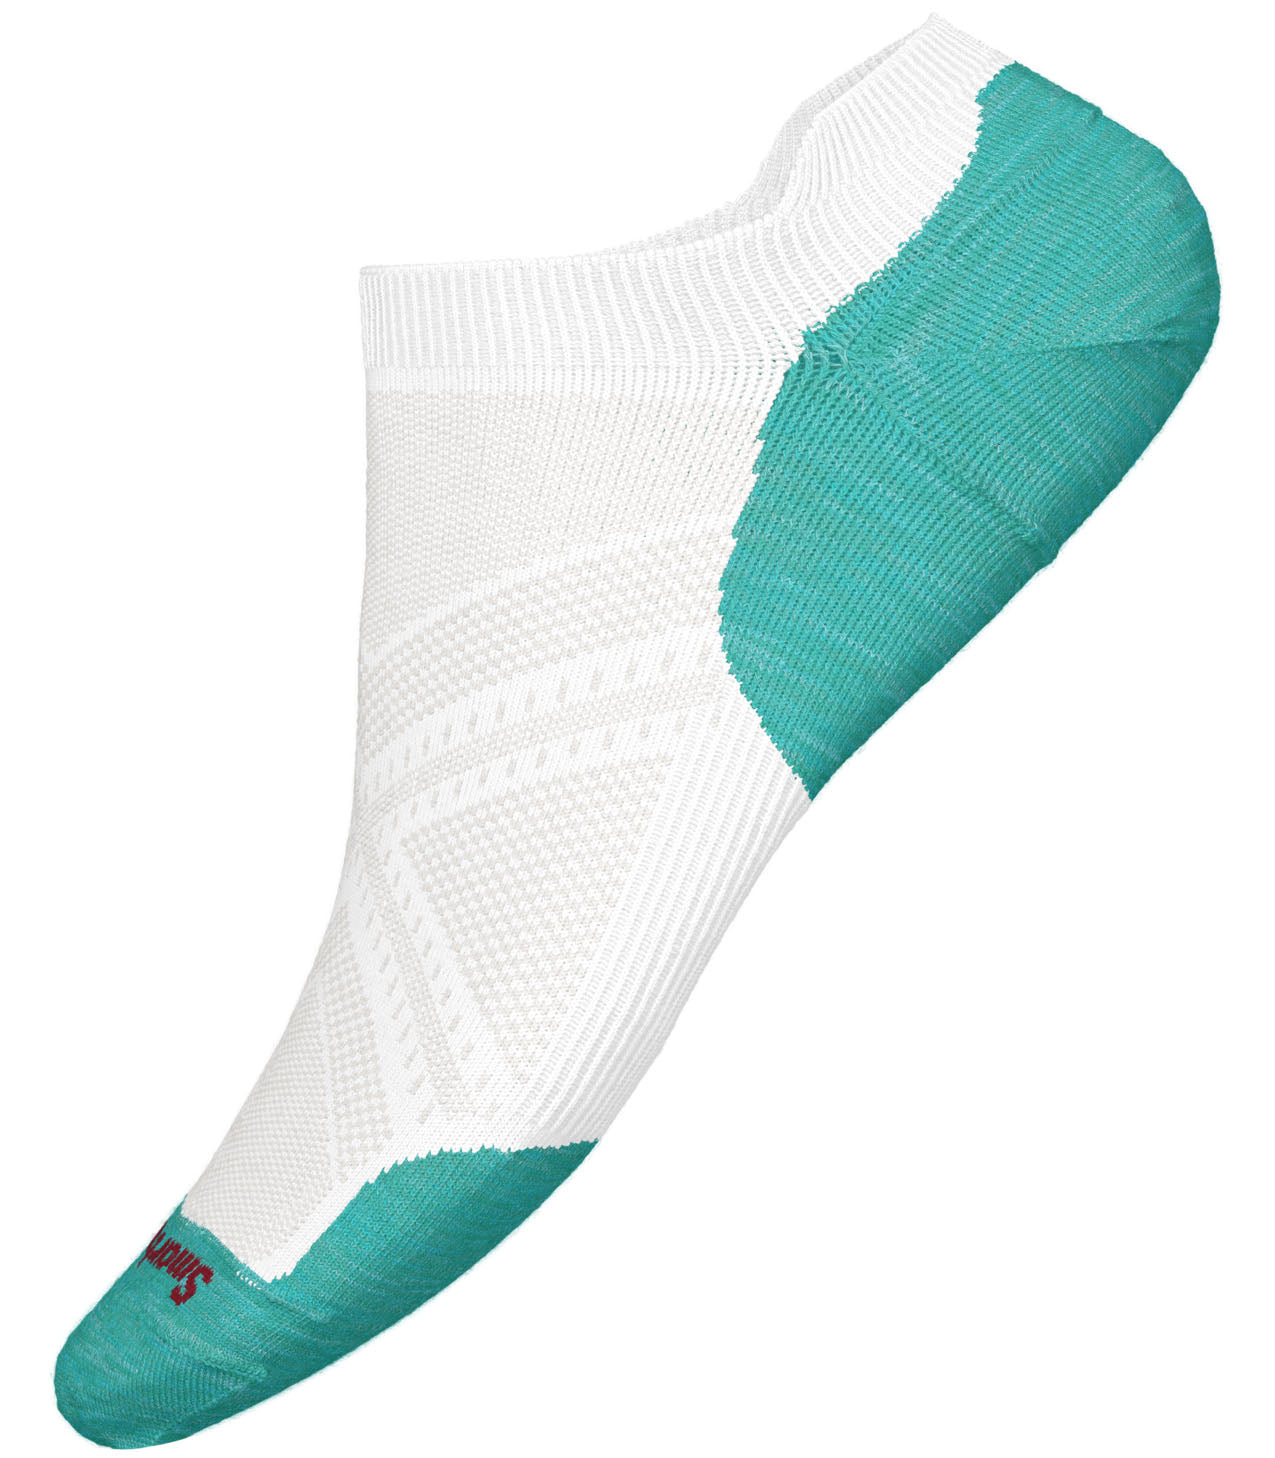 Unisex Smartwool PhD Run Light Elite Micro Sock in White-Capri from the side view